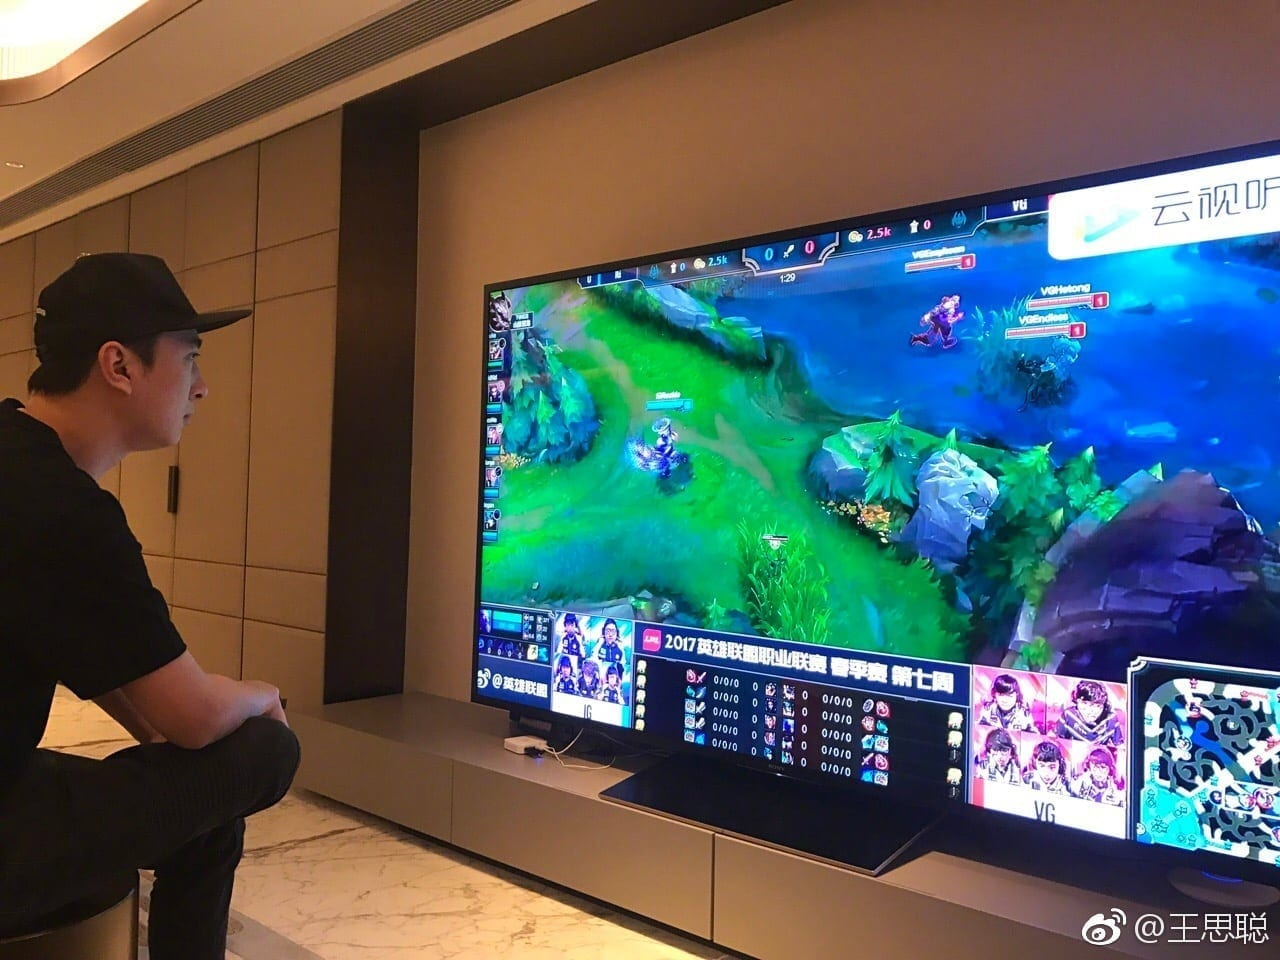 House Image League Of Legends Fan Customizes 100 Inch Tv To View